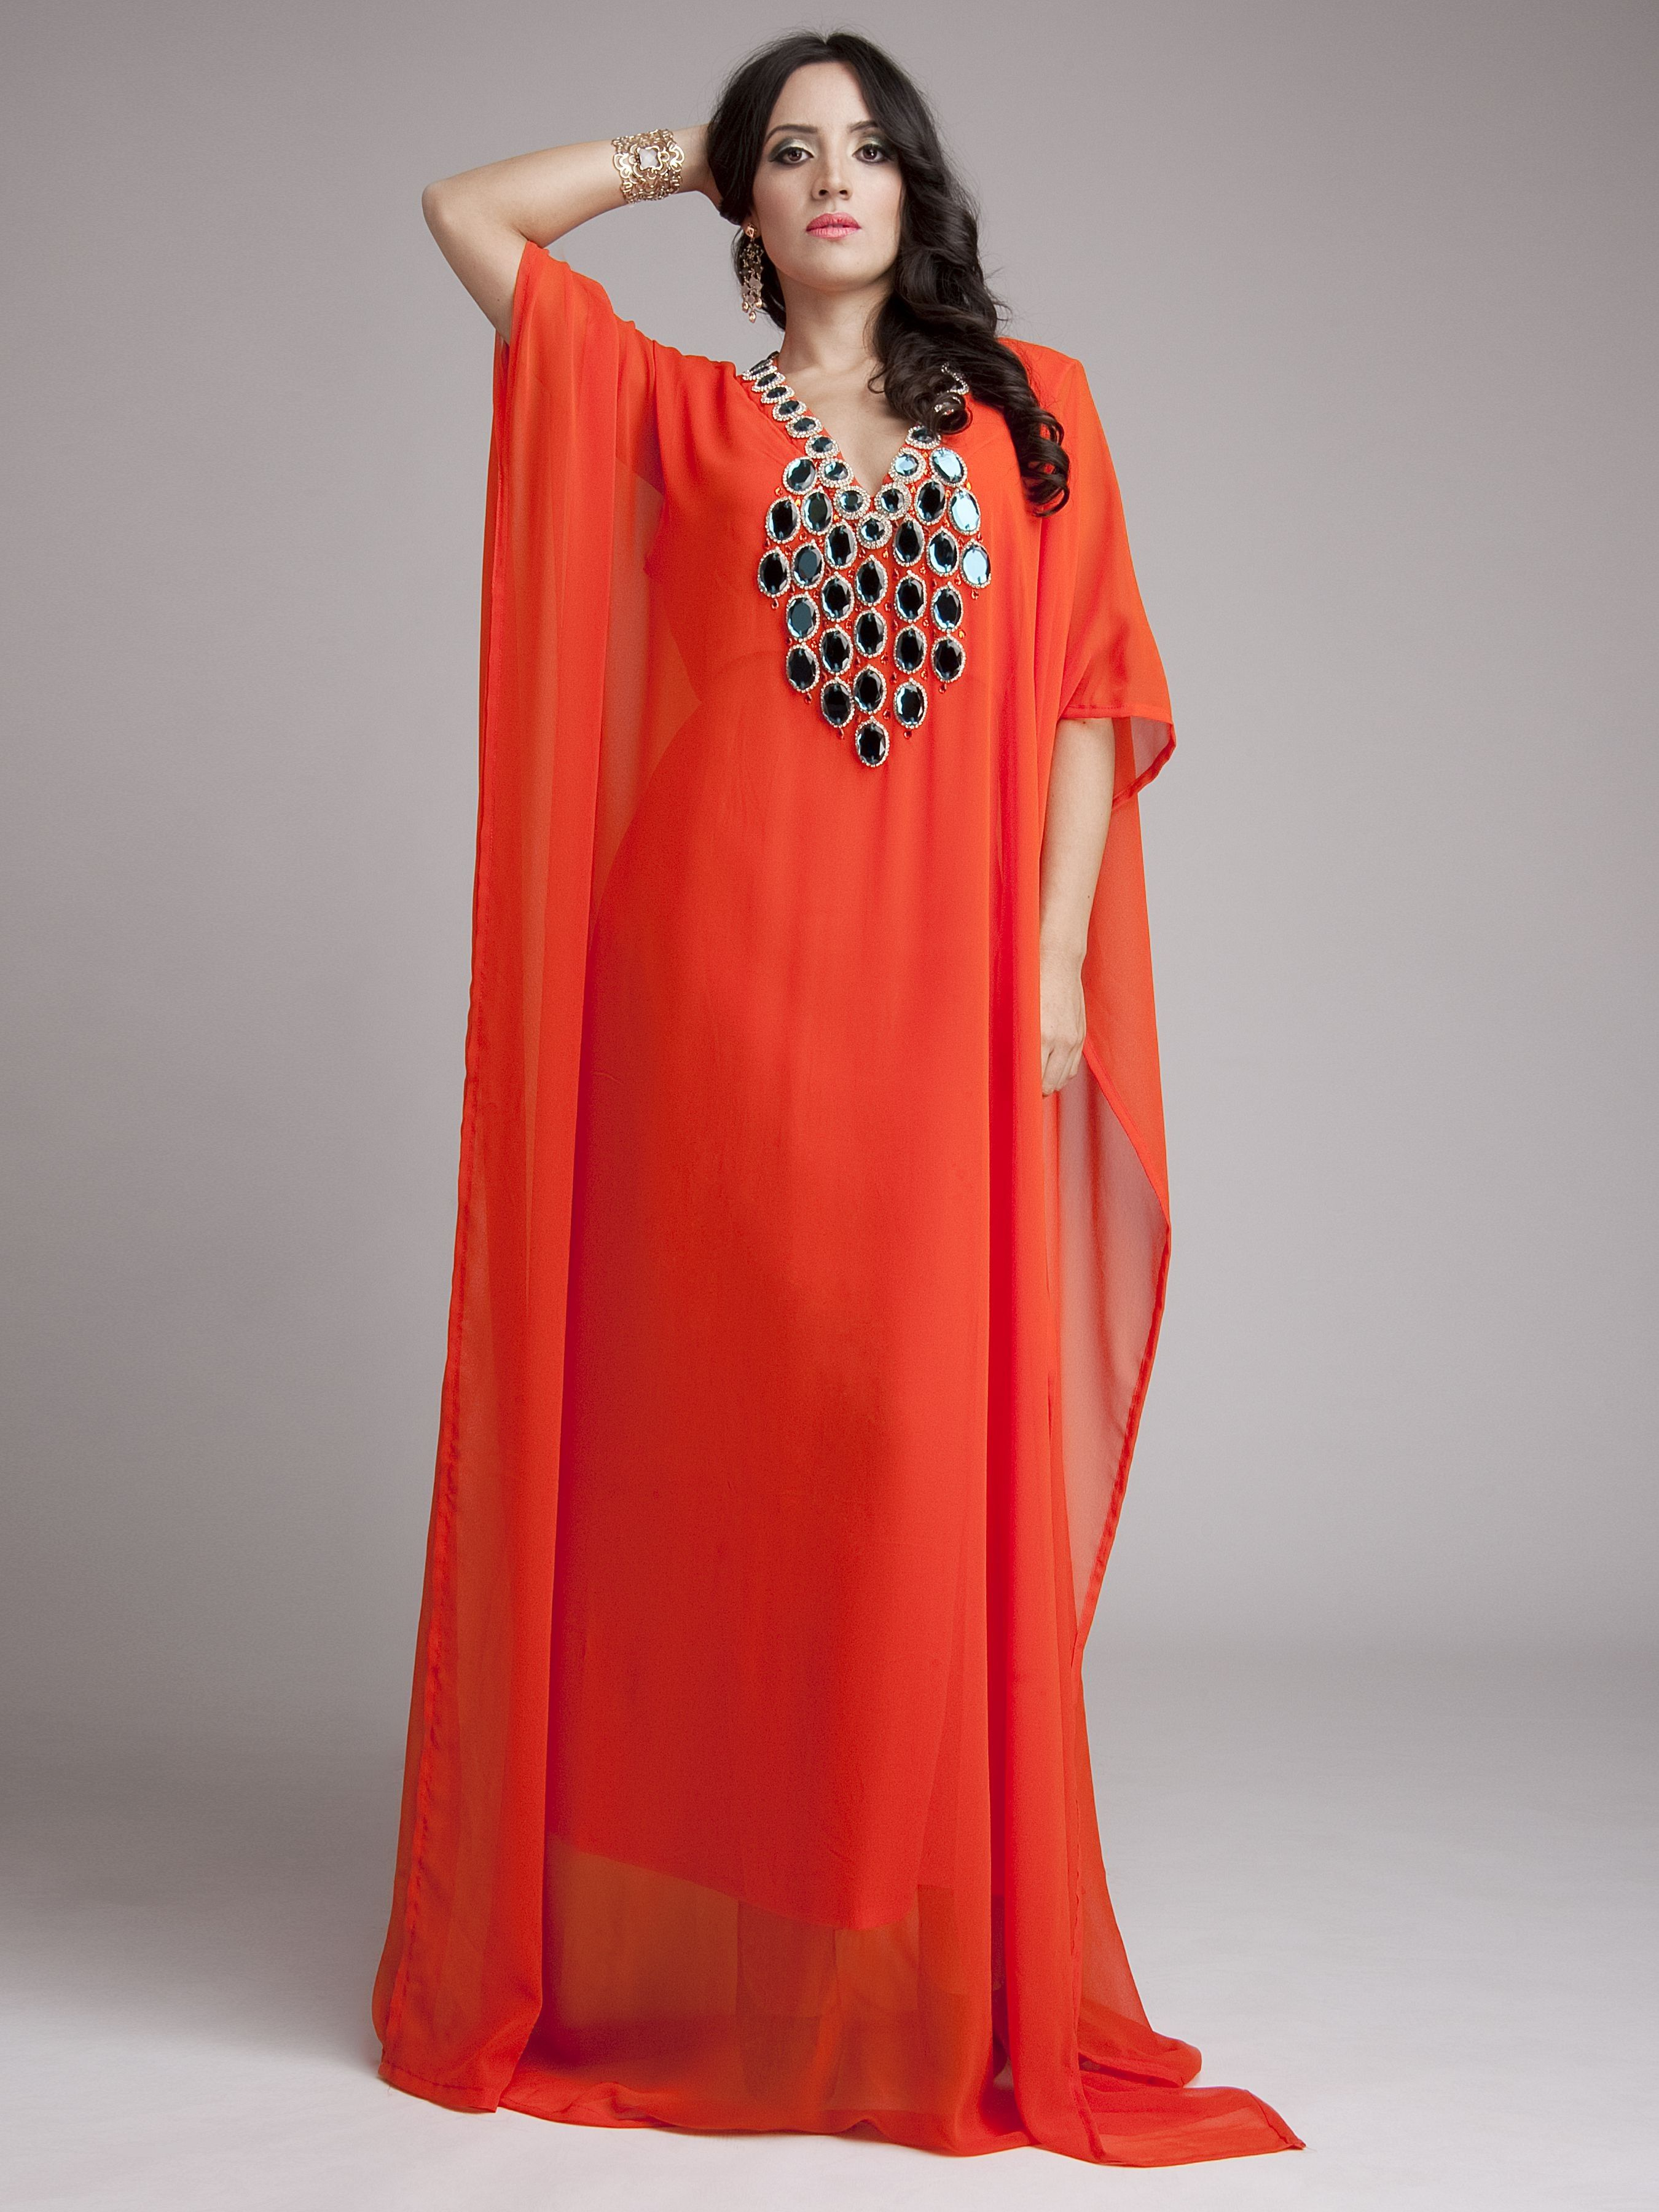 8cf7dd40c0 Very Fancy dubai Kaftan/Abaya/jalabiya ladies maxi dress(same on model,  blue). Description from pinterest.com. I searched for this on  bing.com/images